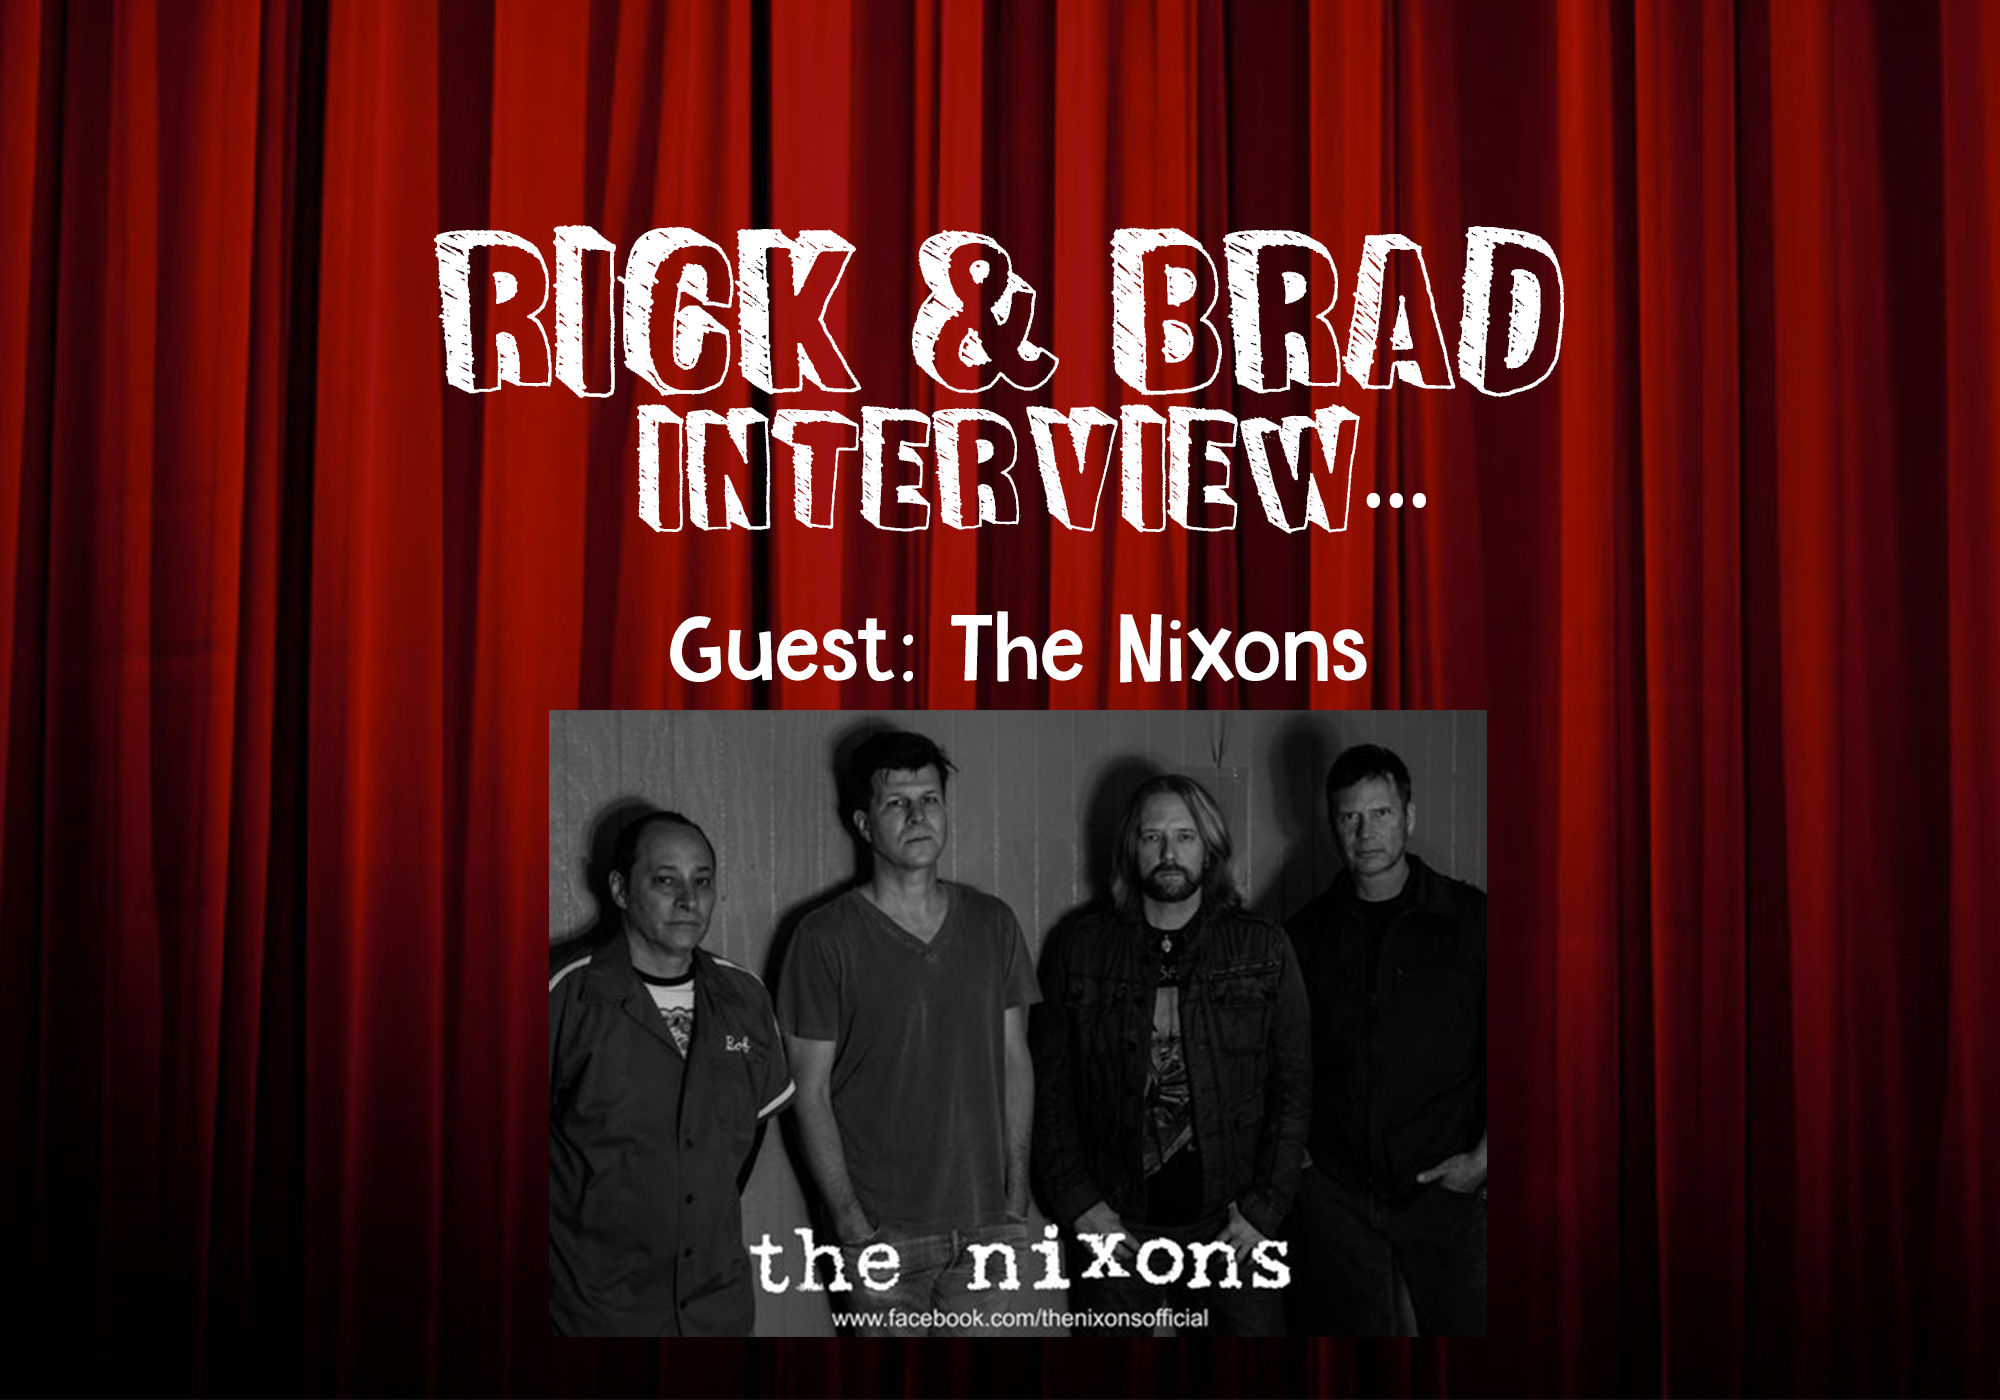 Rick & Brad Talk to The Nixons